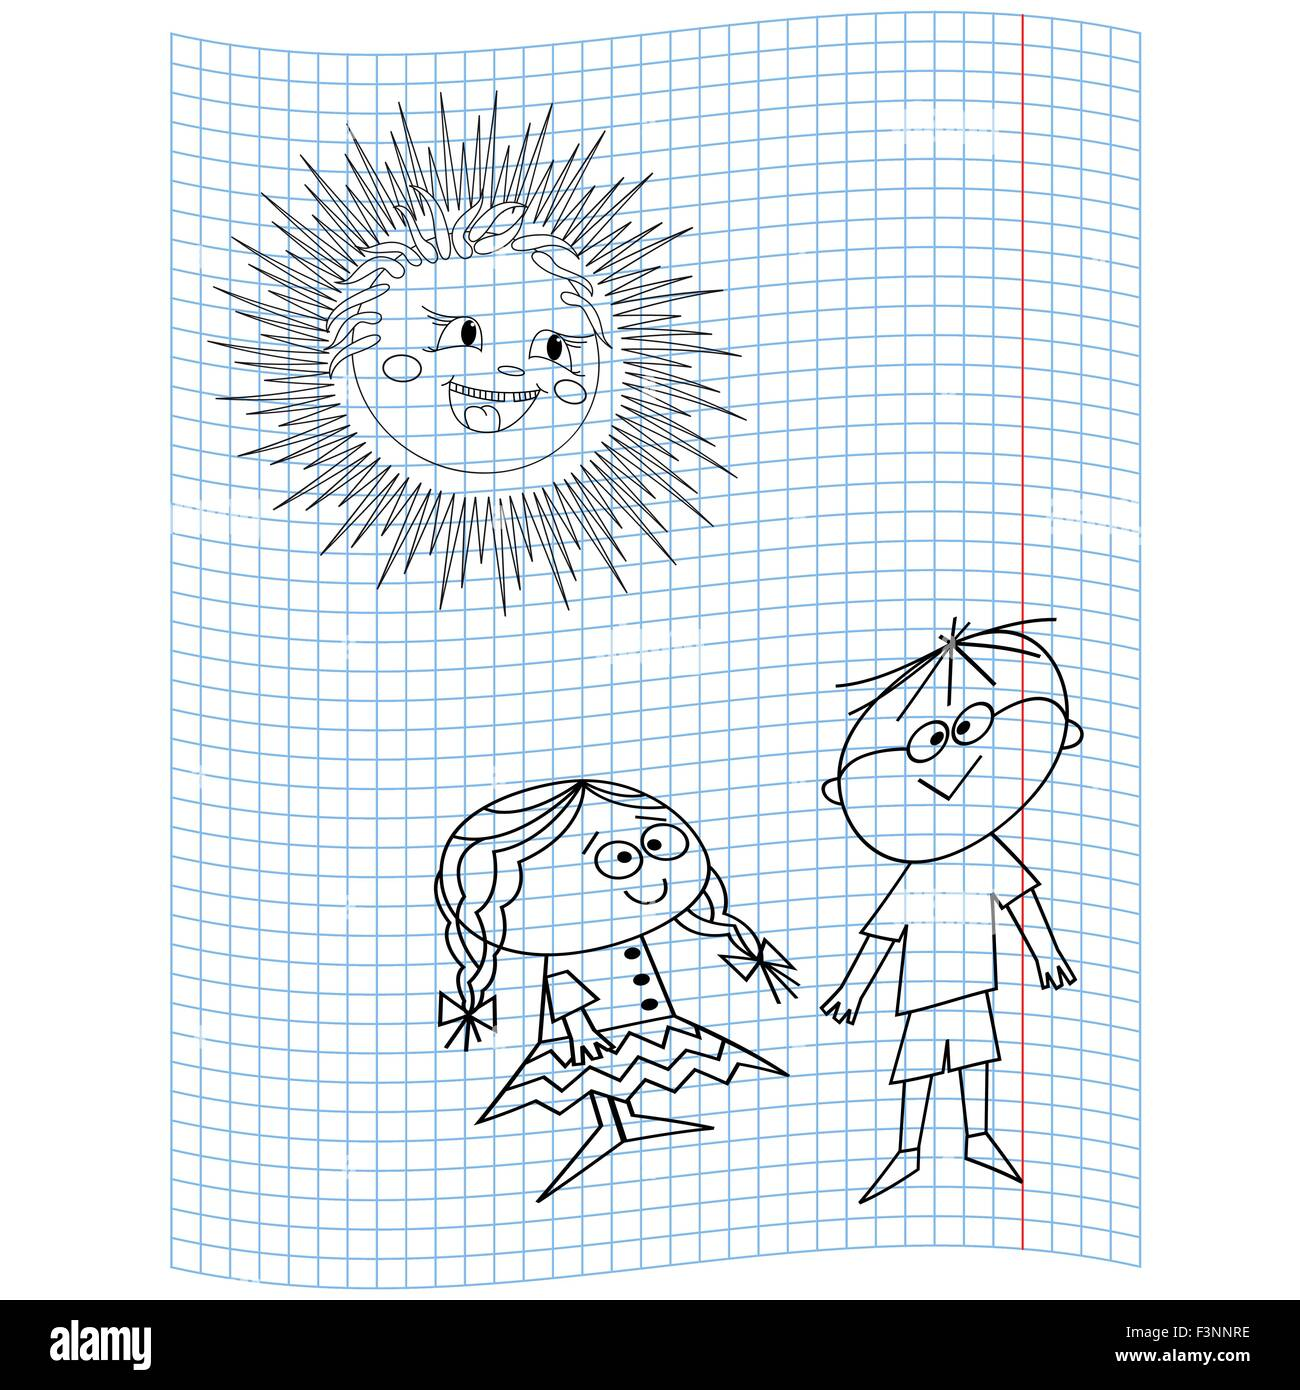 Schoolgirl and Schoolboy on a notebook sheet, vector illustration hand drawing - Stock Vector